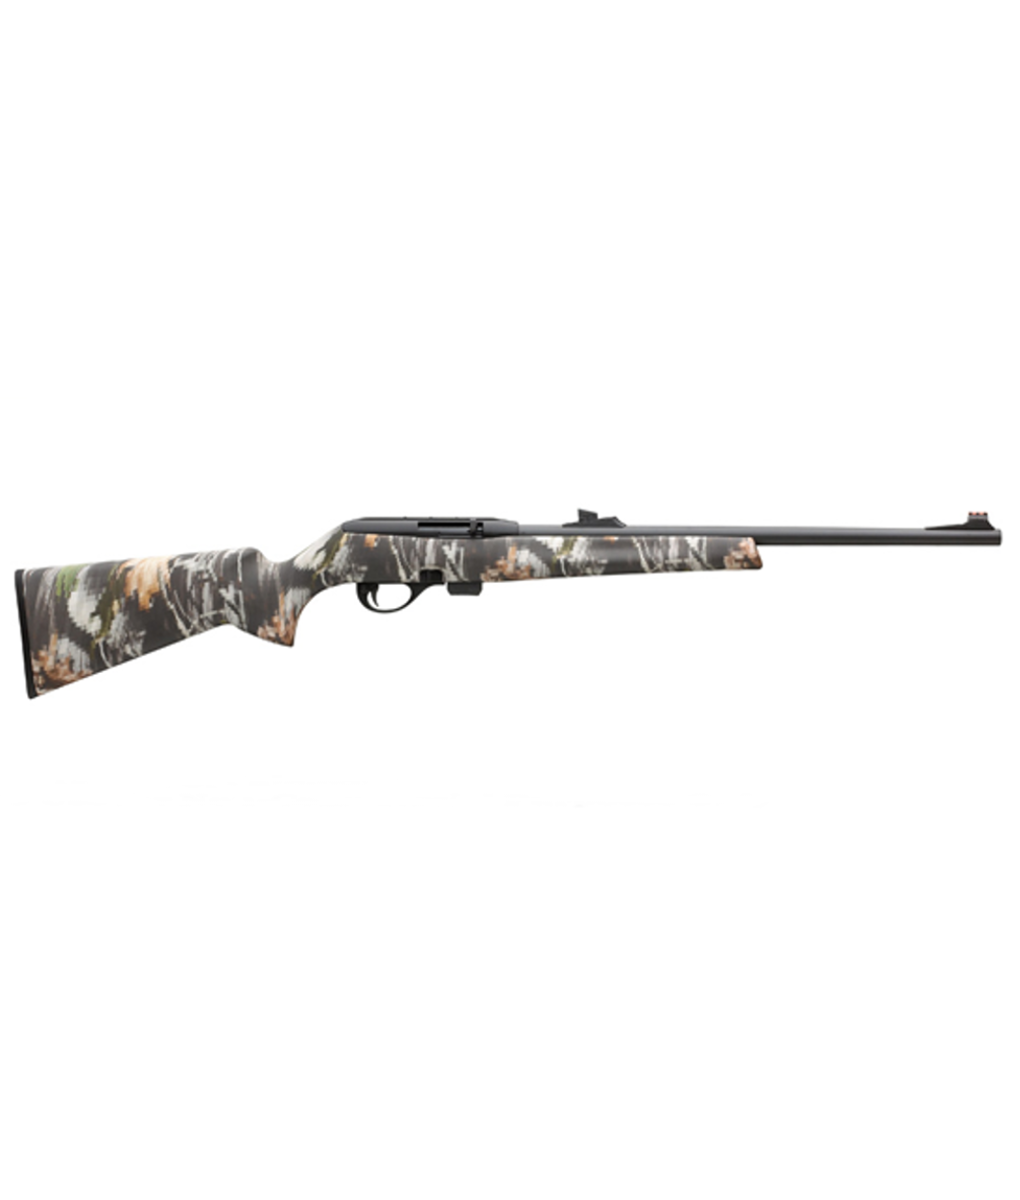 Ruger 10/22 Pink Overmolded Stainless